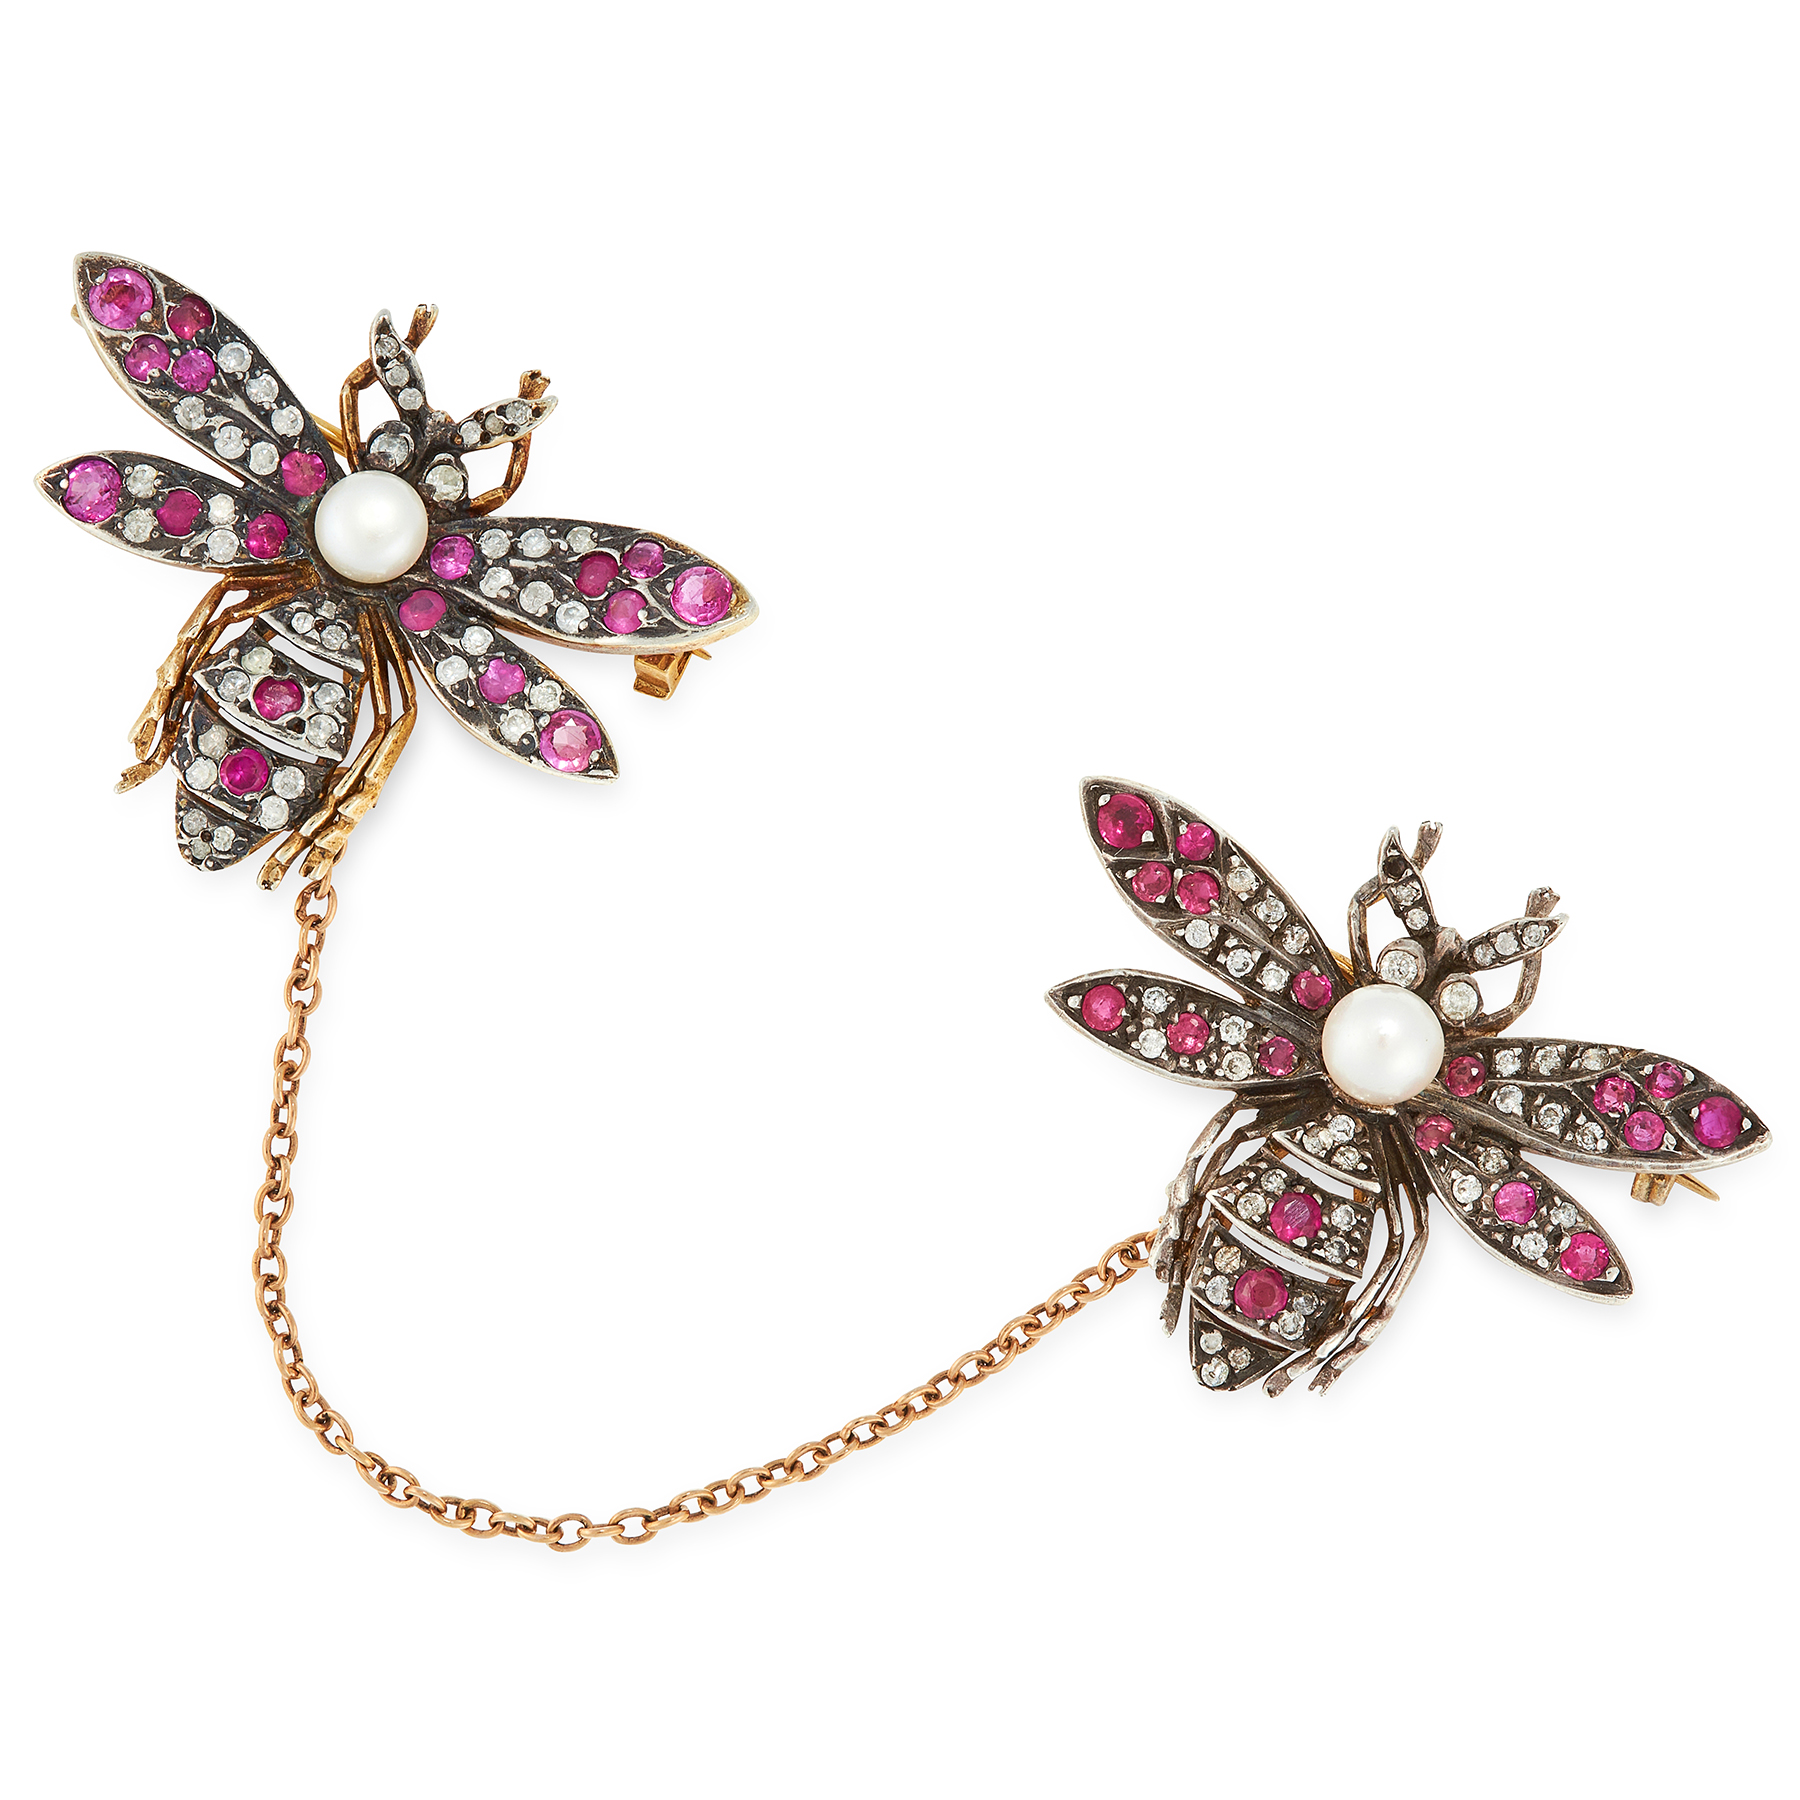 A PAIR OF RUBY, DIAMOND AND PEARL BEE BROOCHES designed as bees, set with round cut rubies and